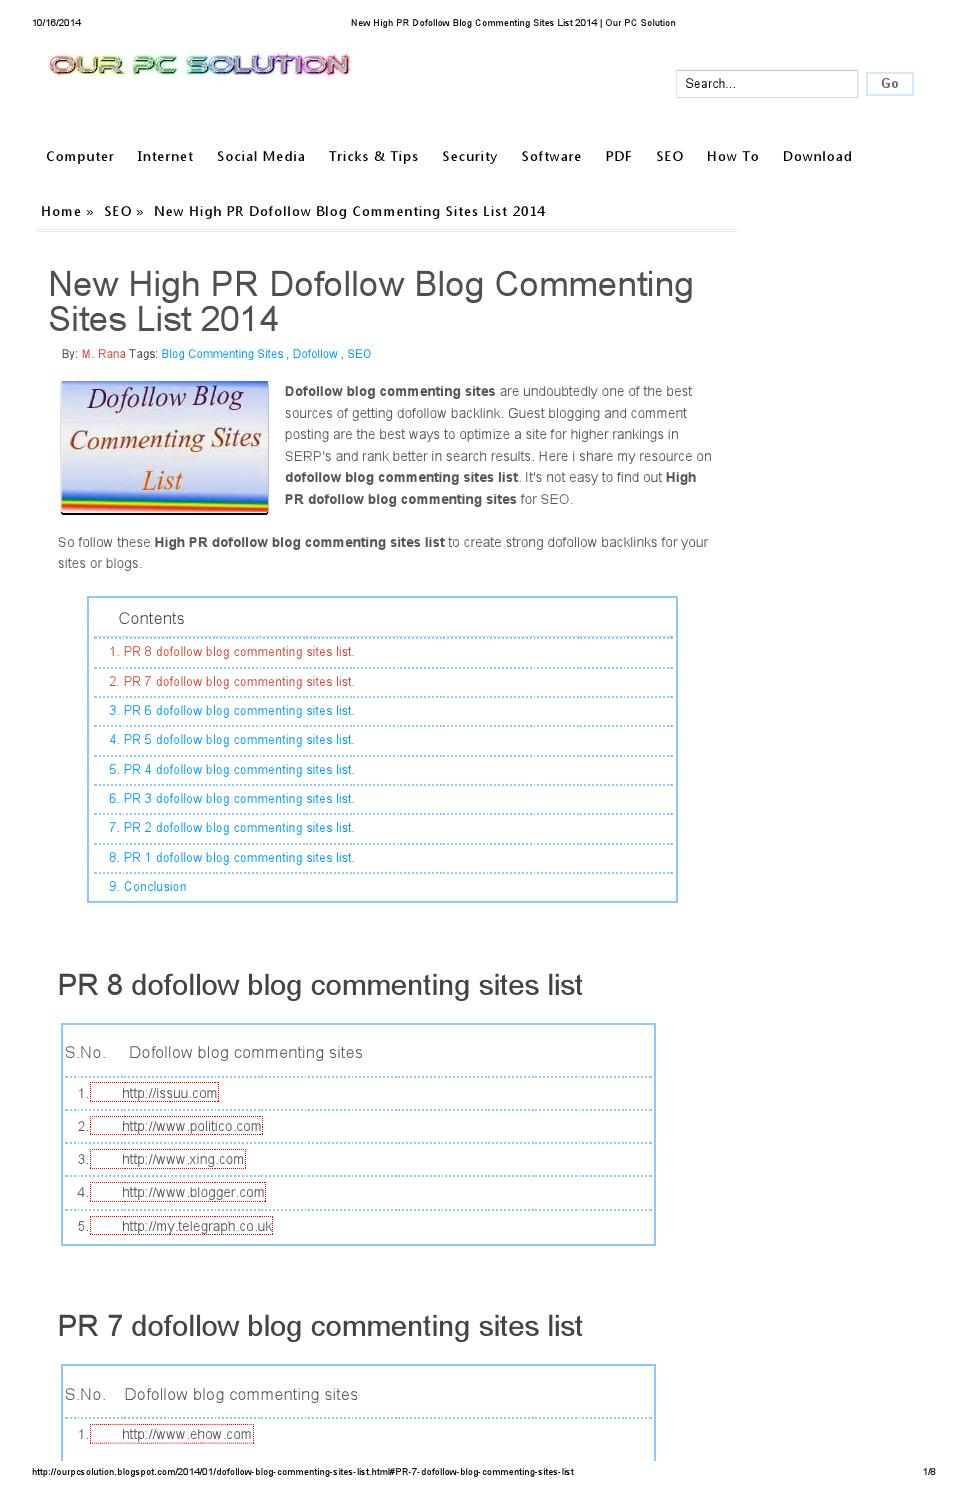 New high pr dofollow blog commenting sites list 2014 our pc solution